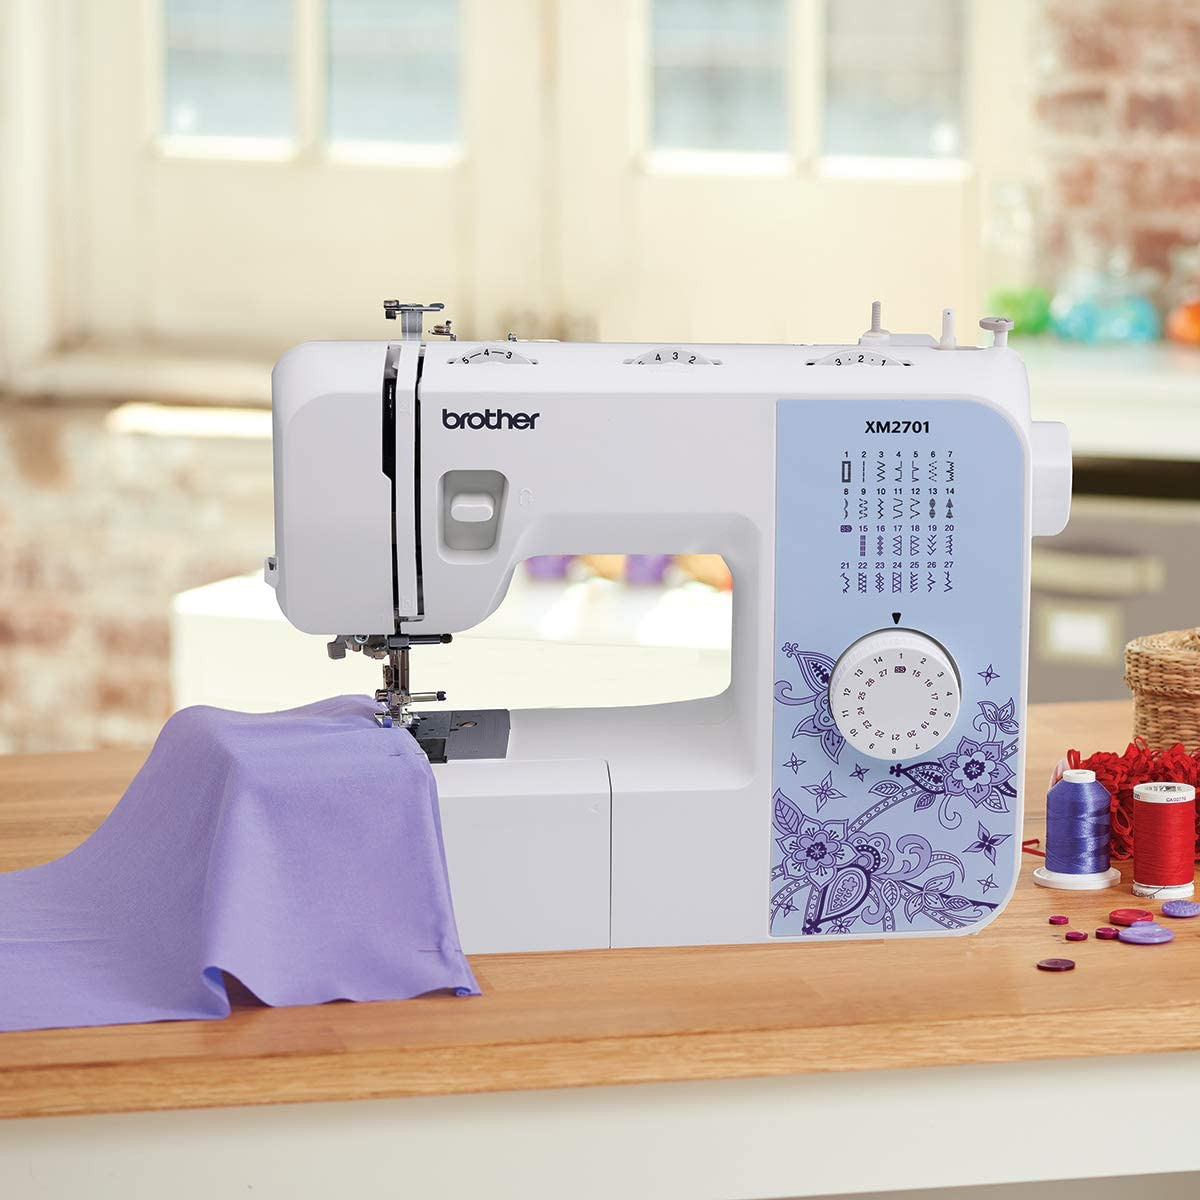 The Best Portable Sewing Machine | Top 10 Sewing Choices